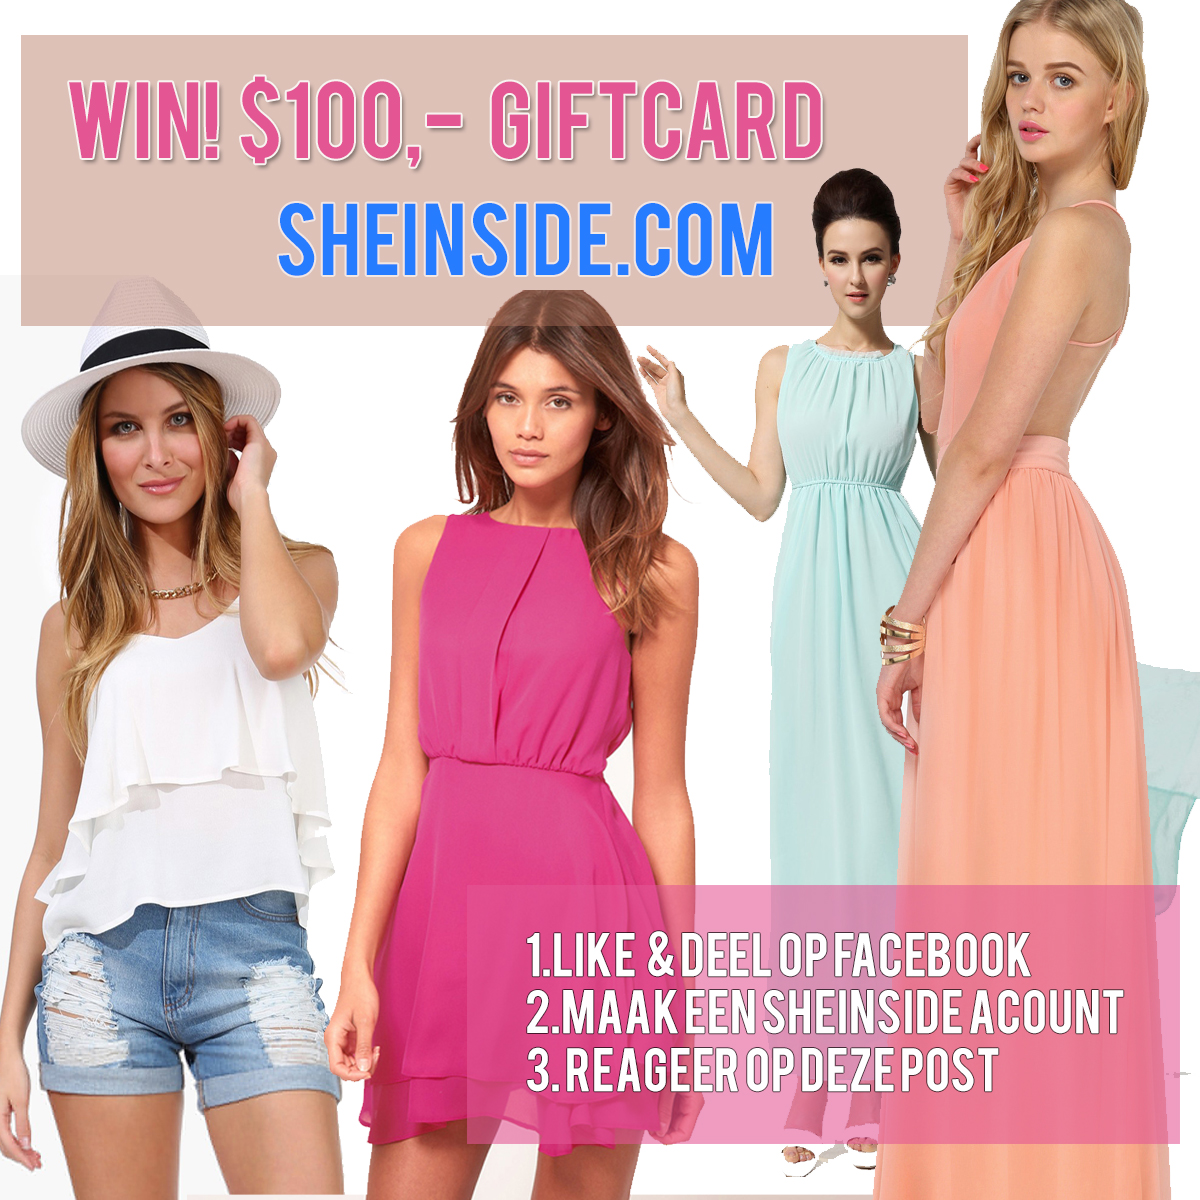 Sheinside coupon code